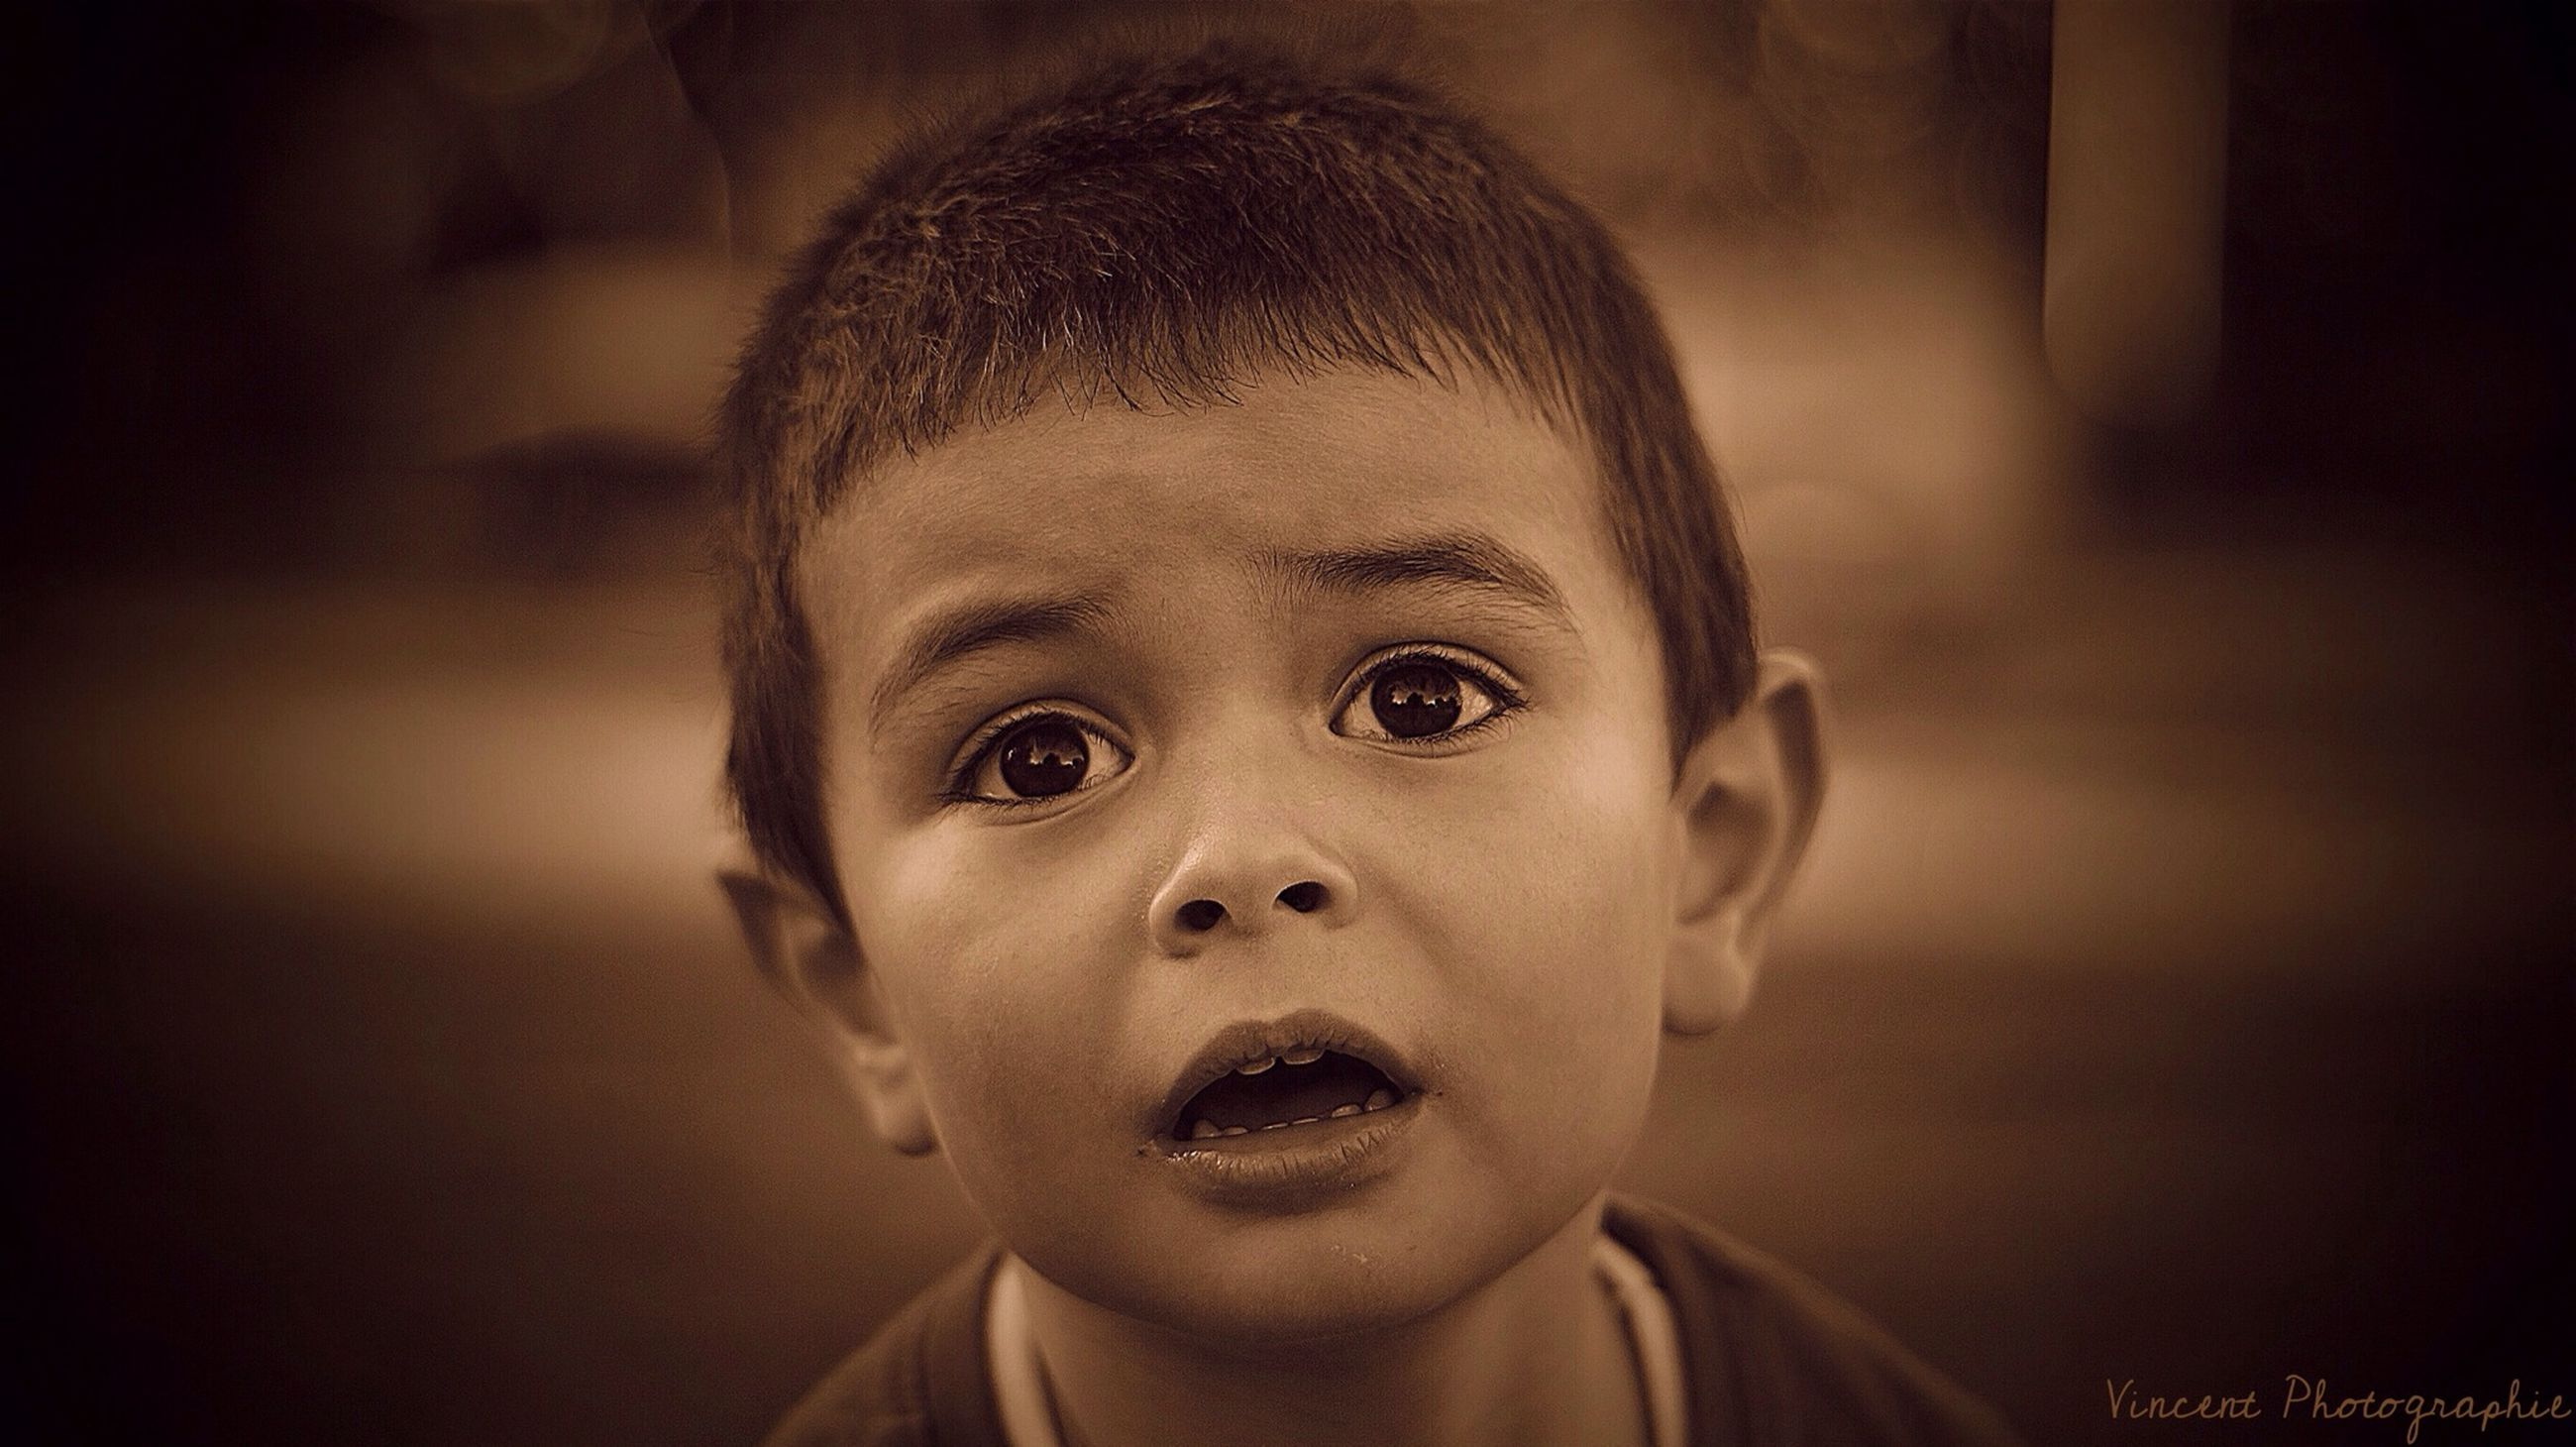 indoors, portrait, looking at camera, close-up, headshot, focus on foreground, childhood, front view, cute, person, innocence, home interior, human face, elementary age, boys, head and shoulders, lifestyles